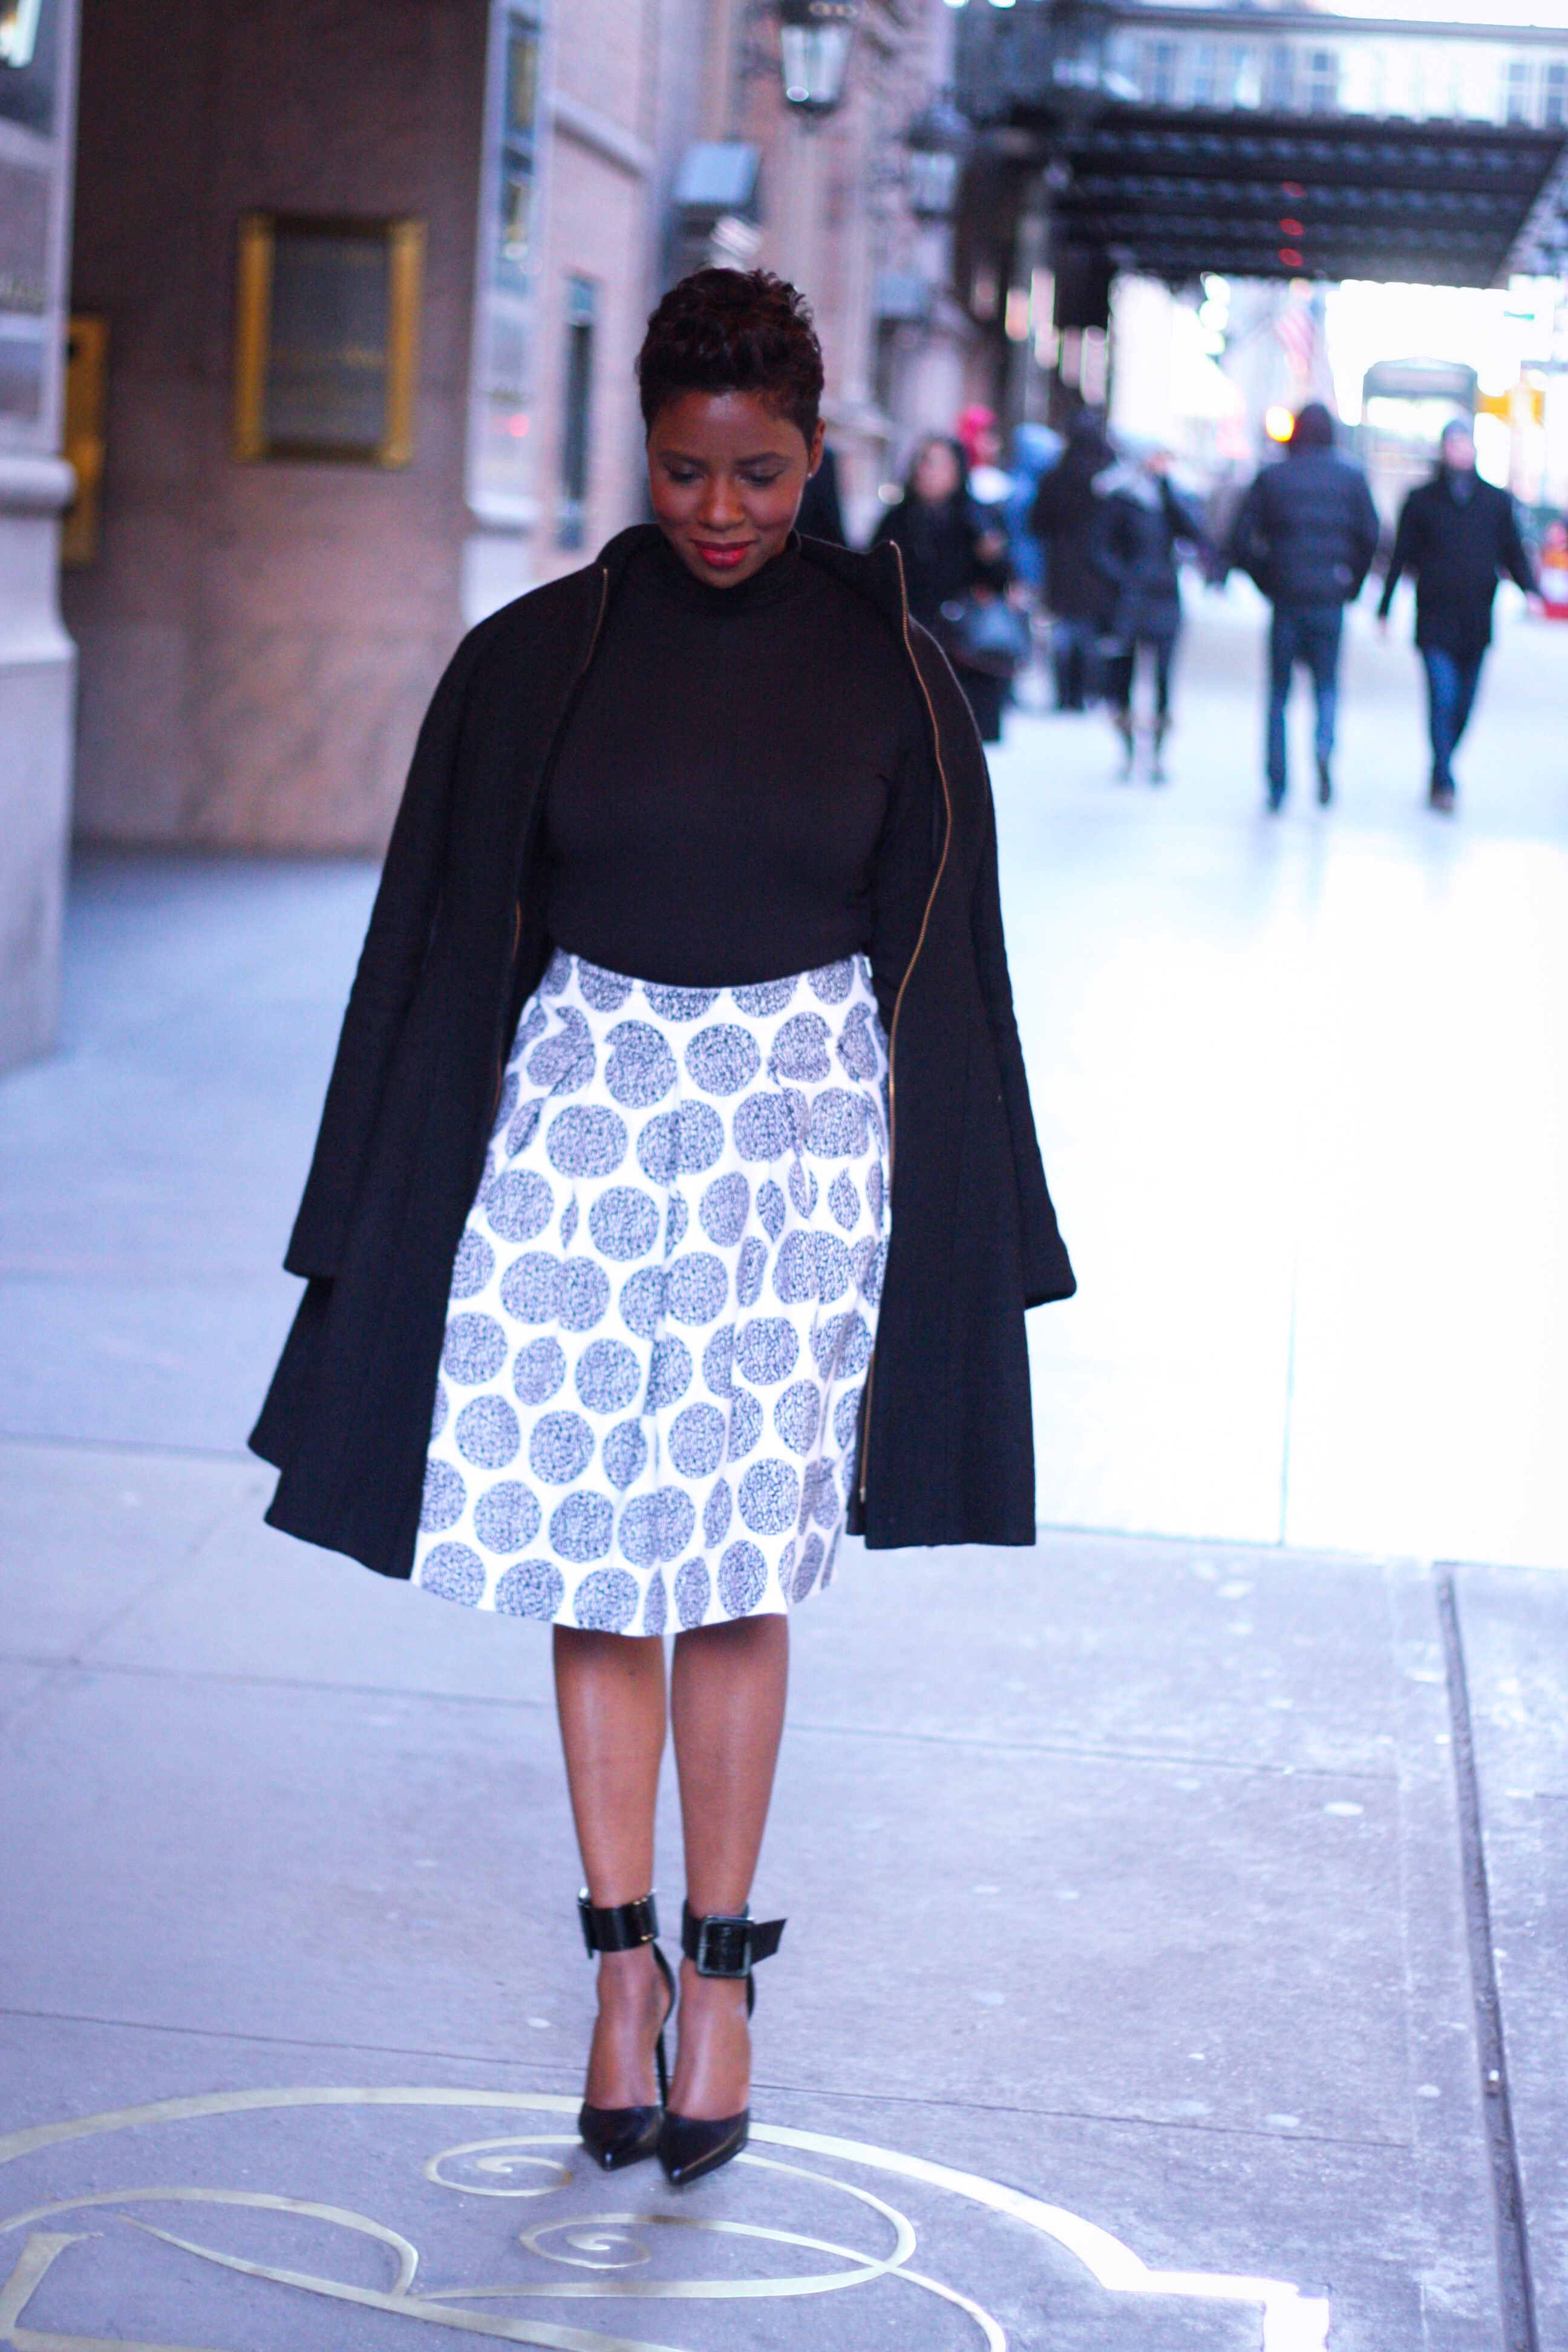 Galentines Day Outfit NYC Fashion Blogger